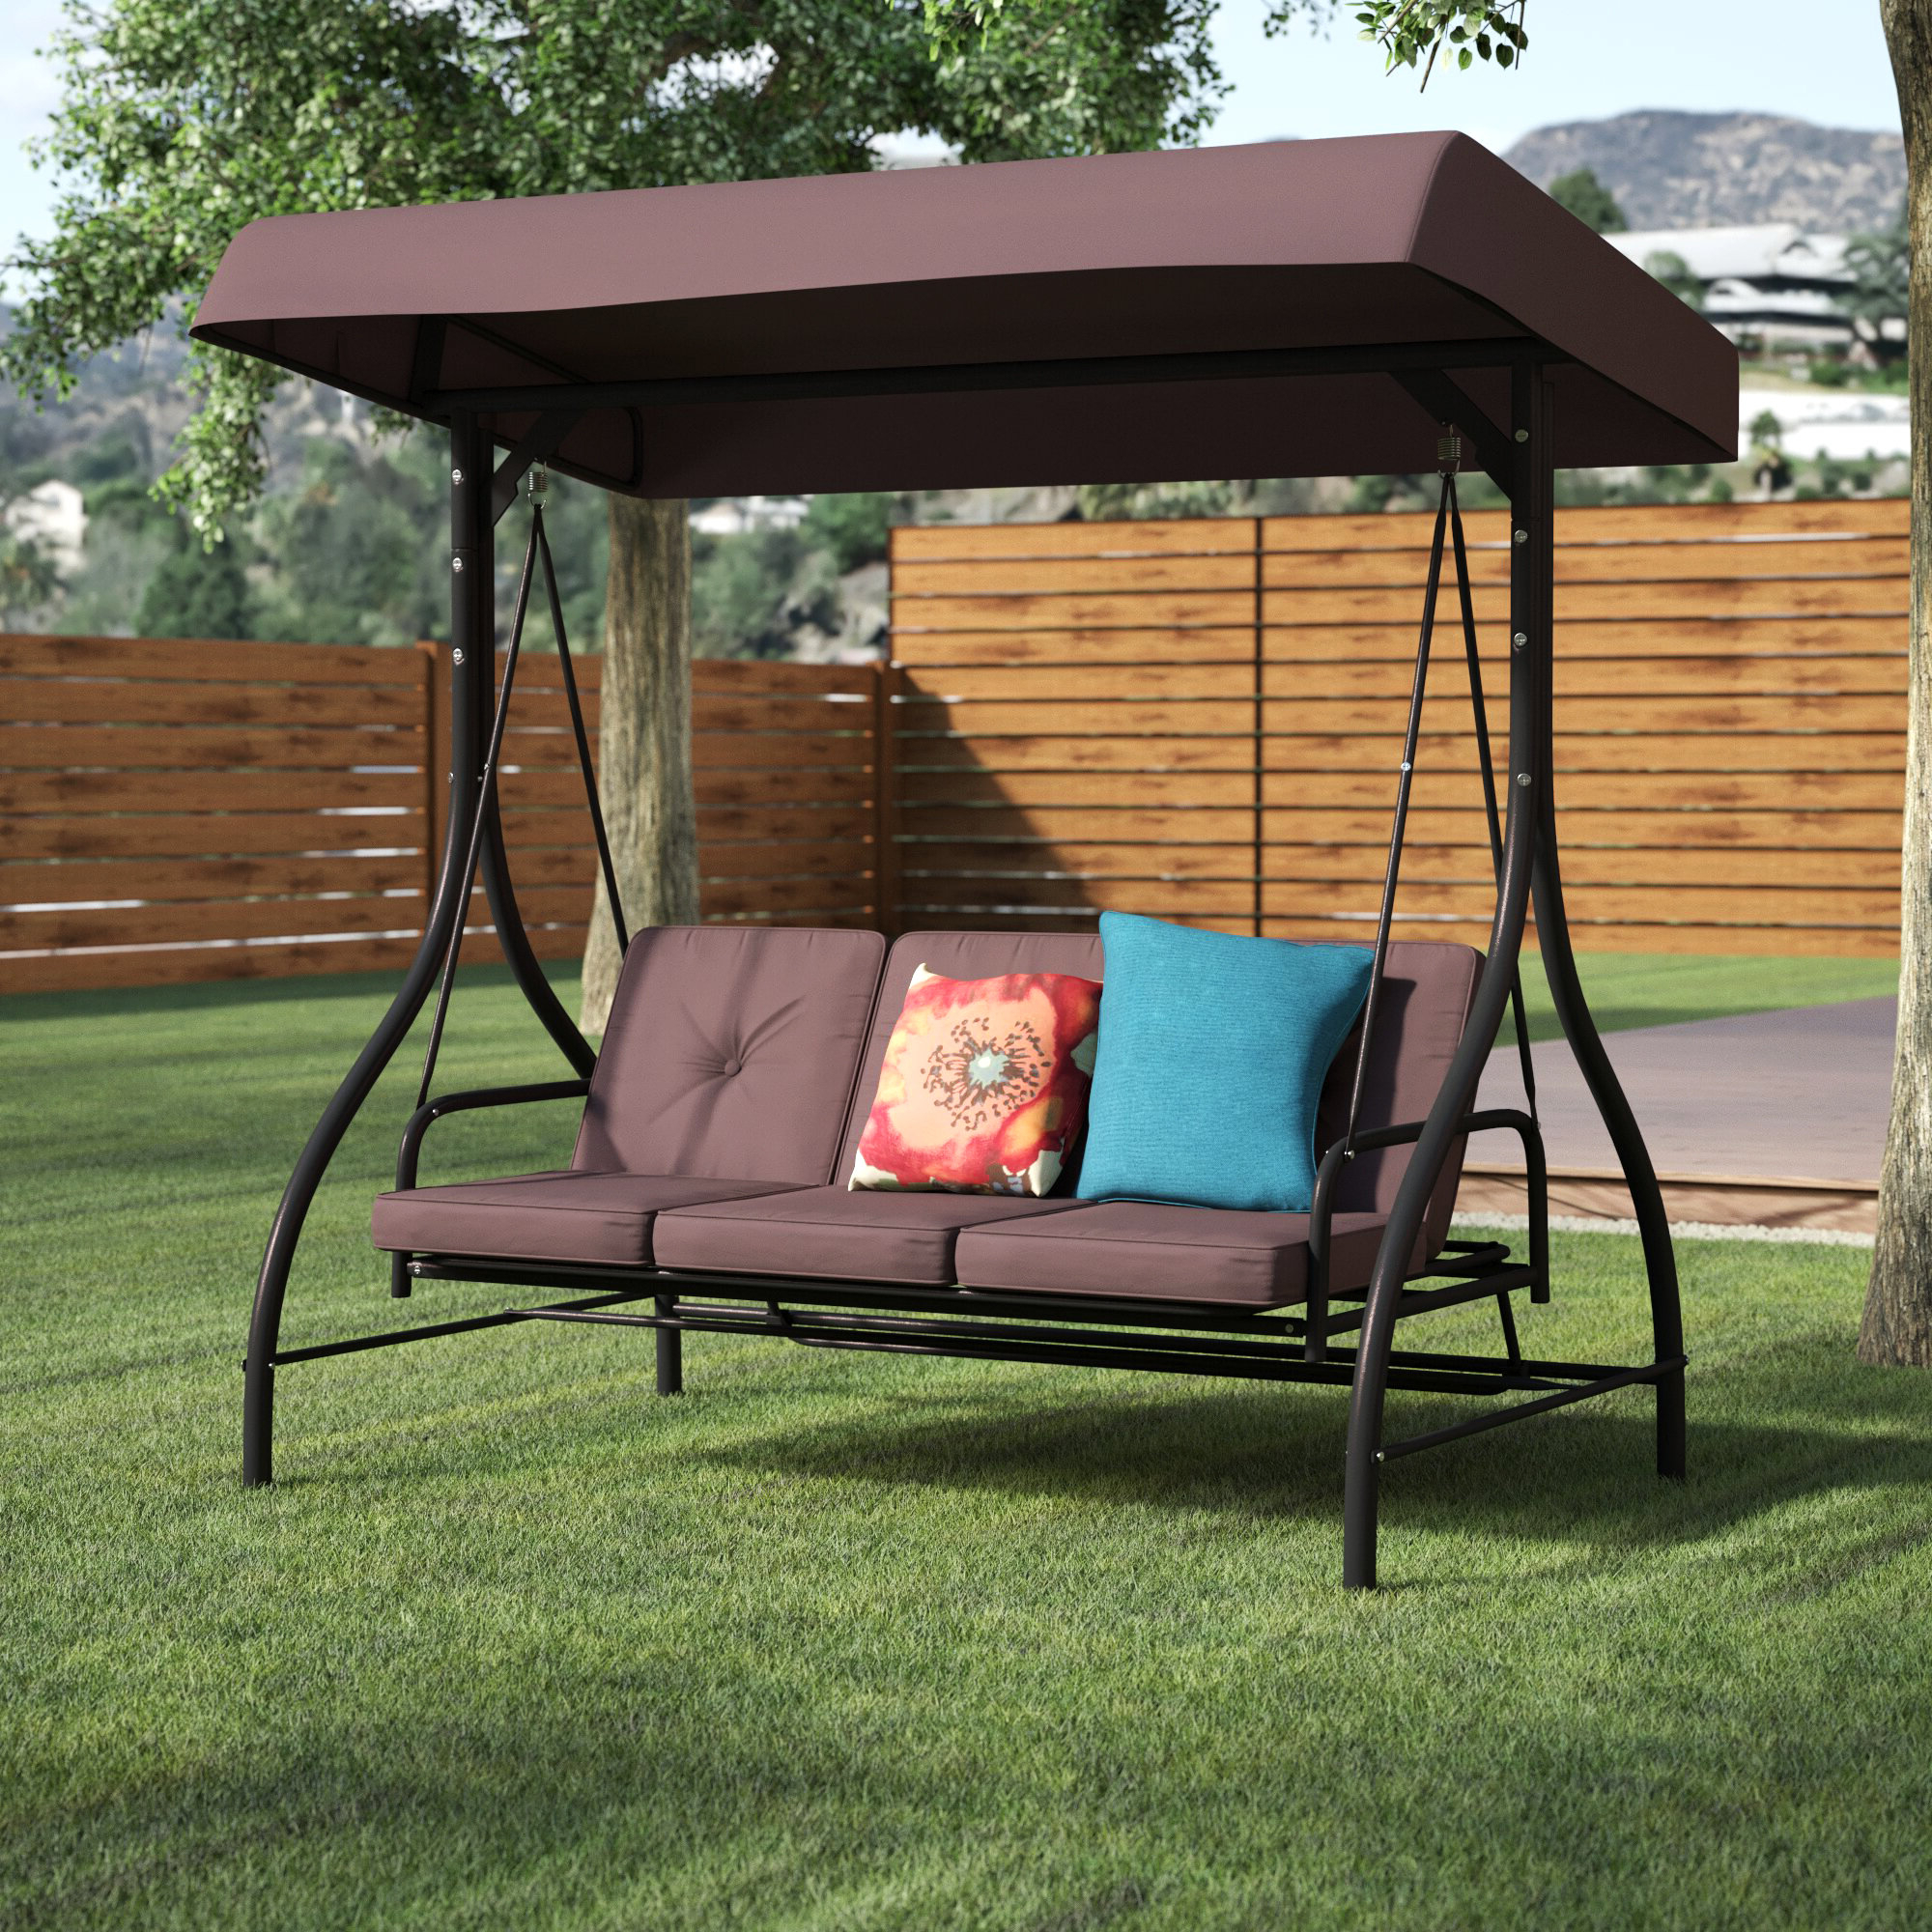 Lasalle Canopy Patio Porch Swing With Stand Pertaining To Most Up To Date Canopy Patio Porch Swing With Stand (Gallery 1 of 25)